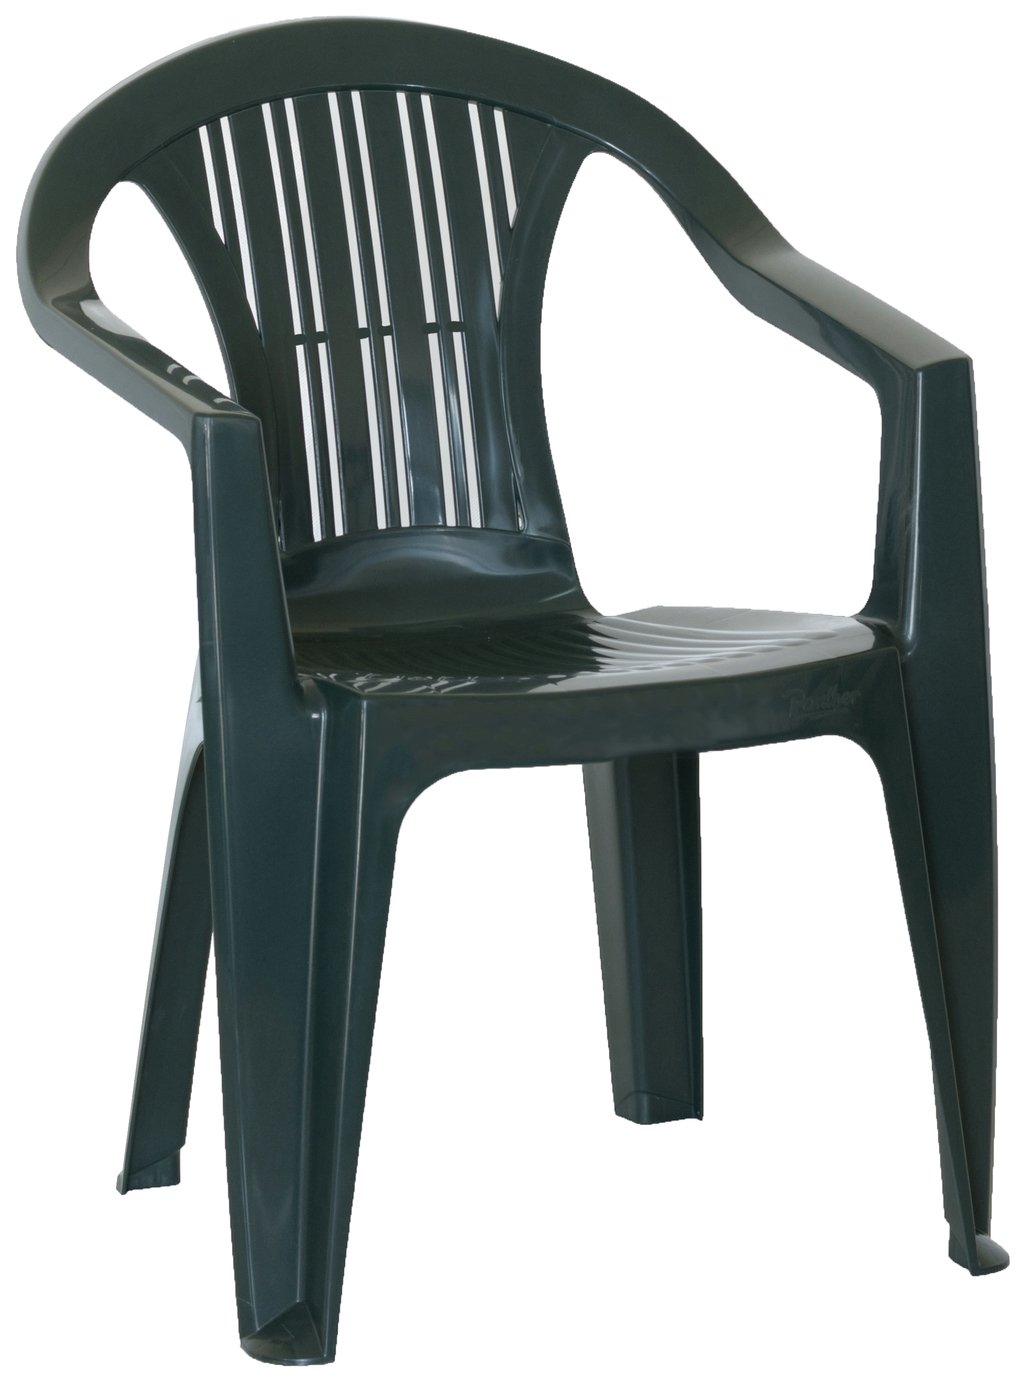 Garden Furniture Enfield buy home stacking chair - ratak green at argos.co.uk - your online